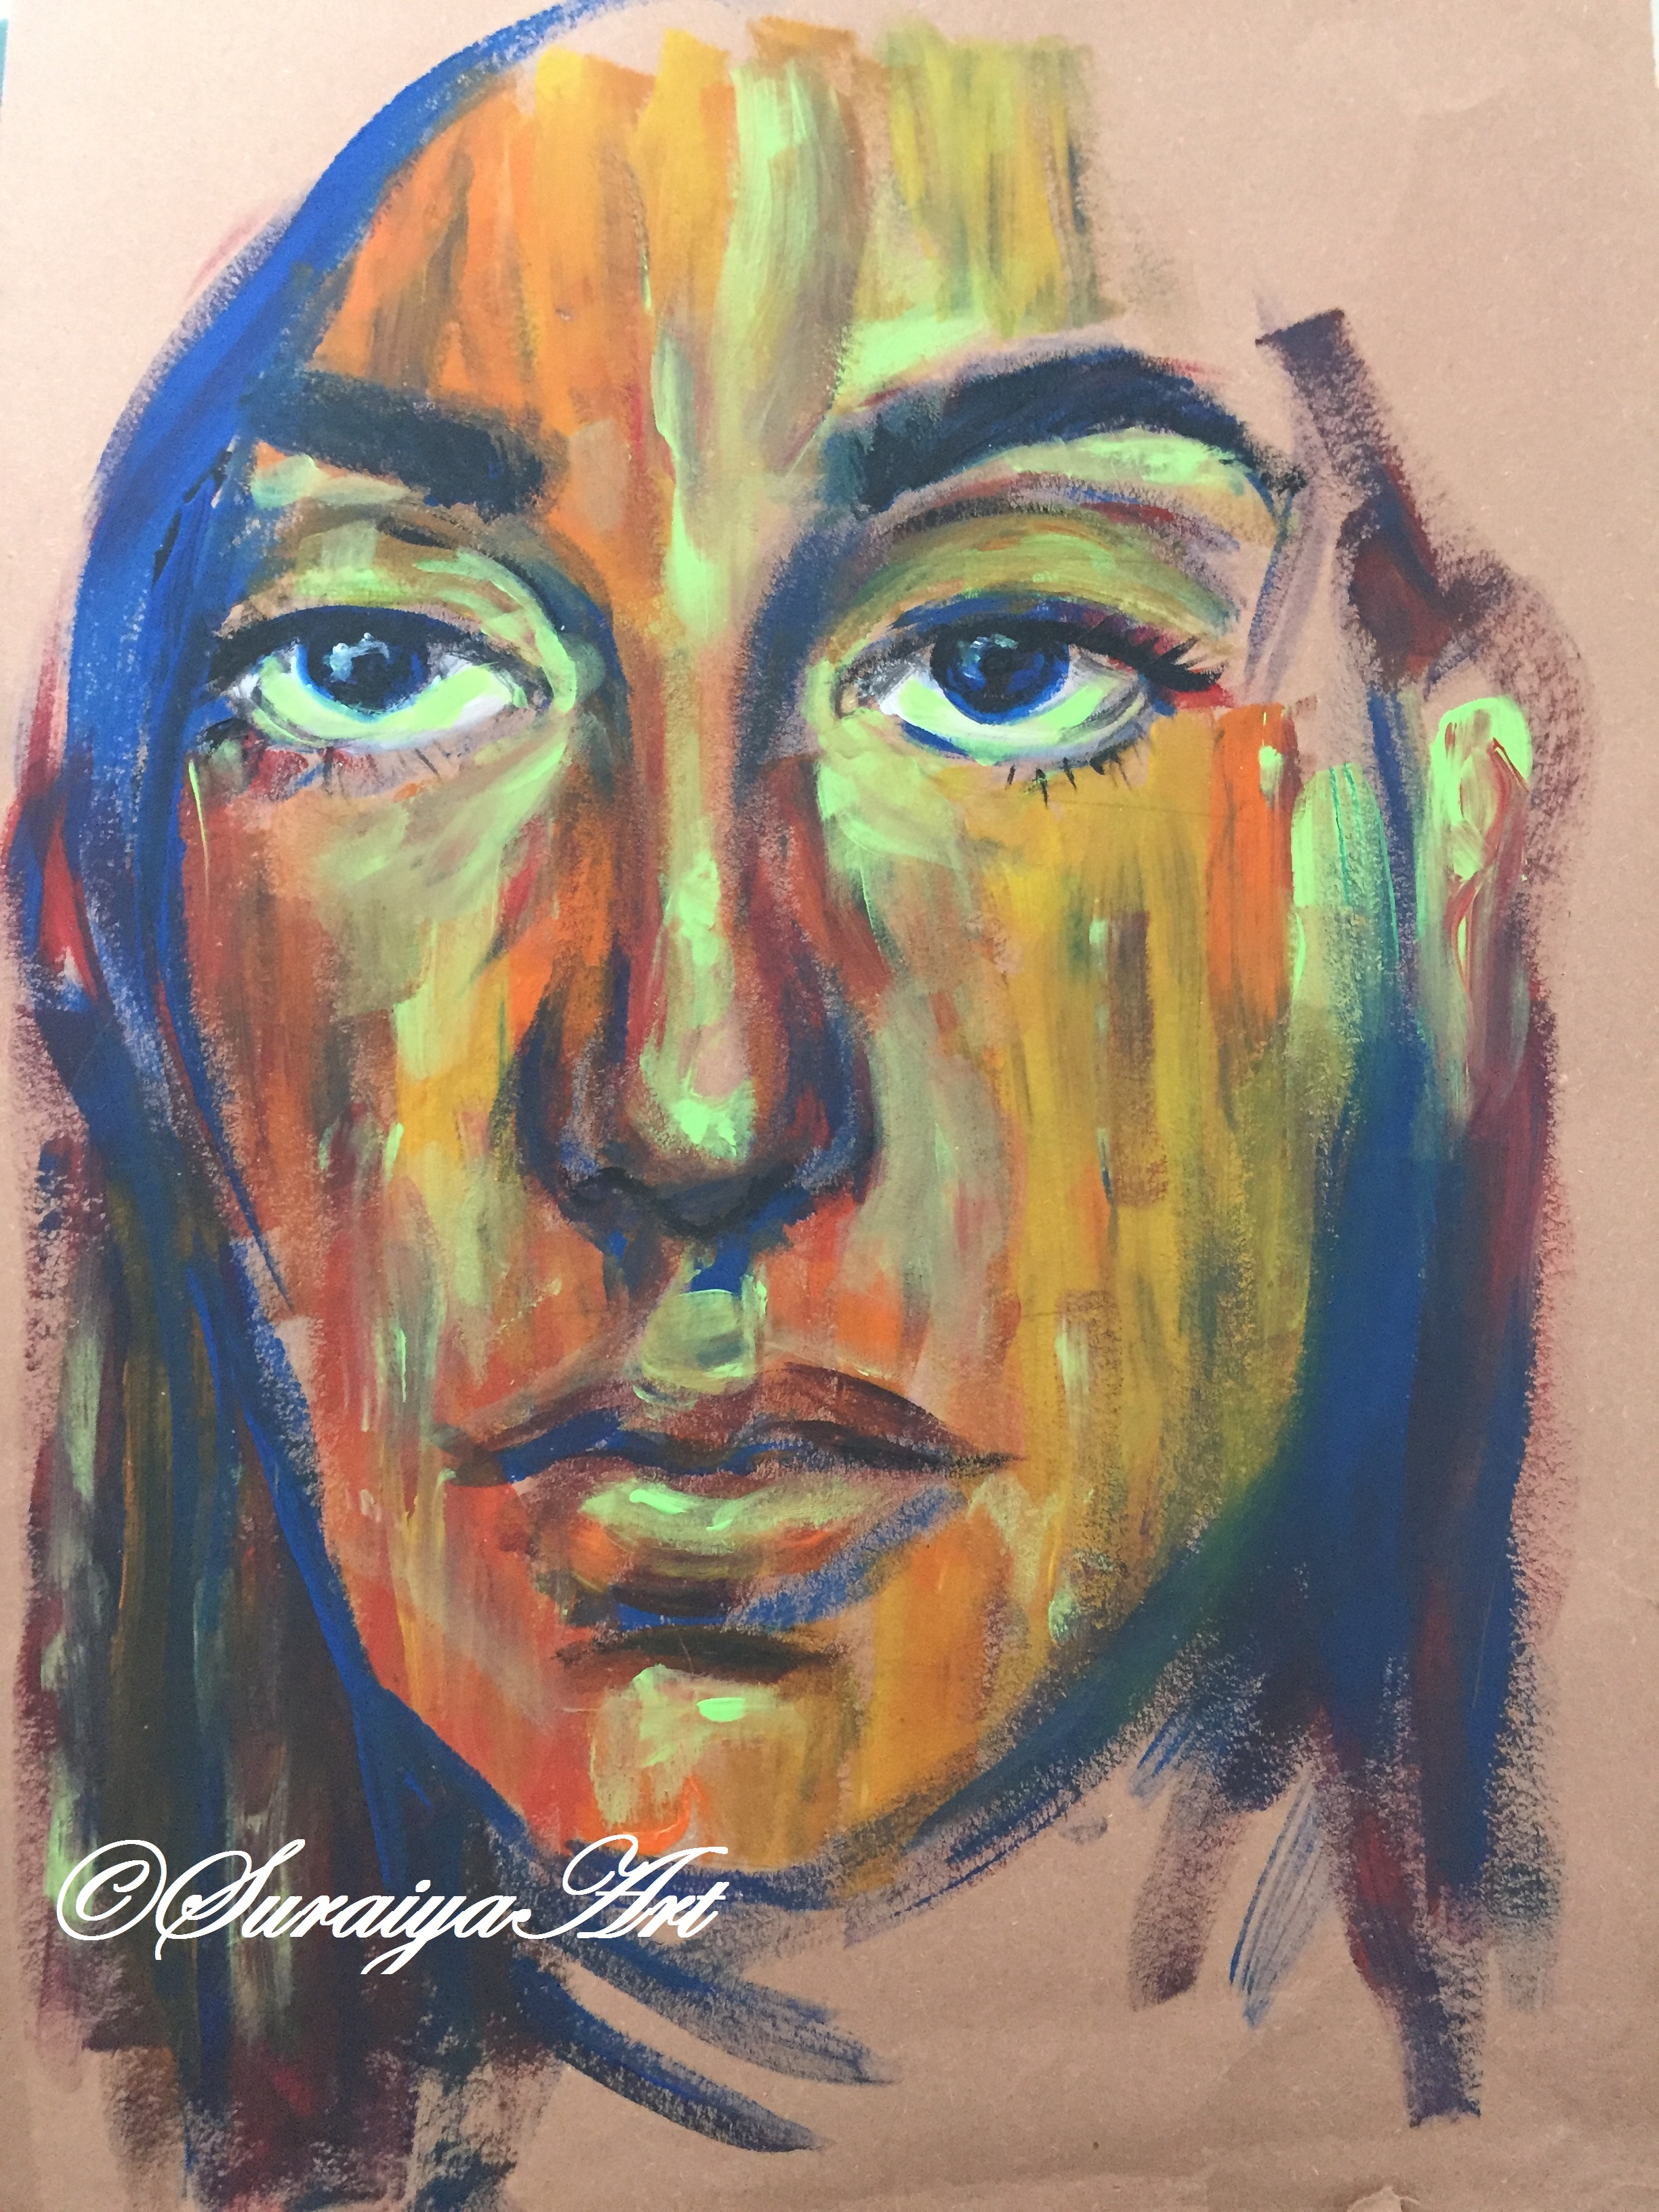 Abstract Self Portrait